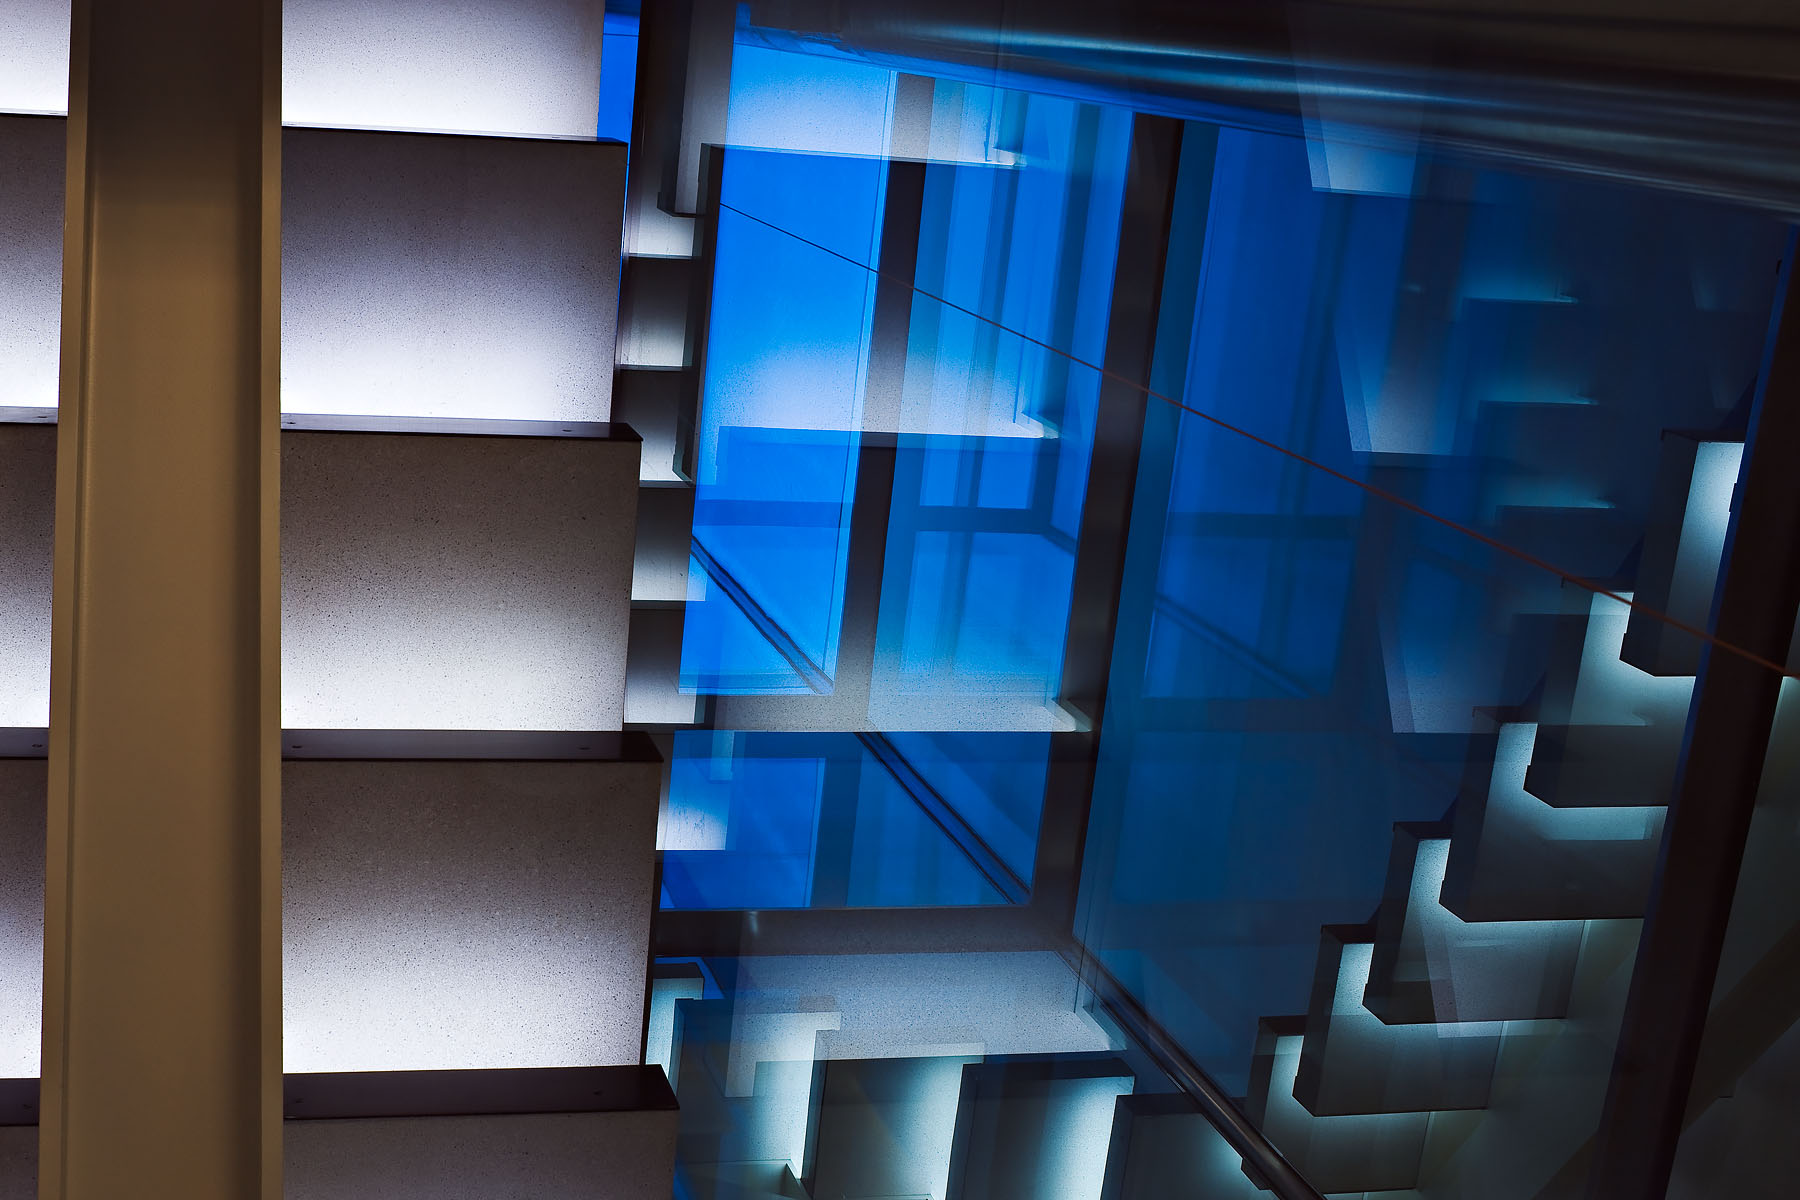 Stairwell of new build houseClient: BLDA Architects